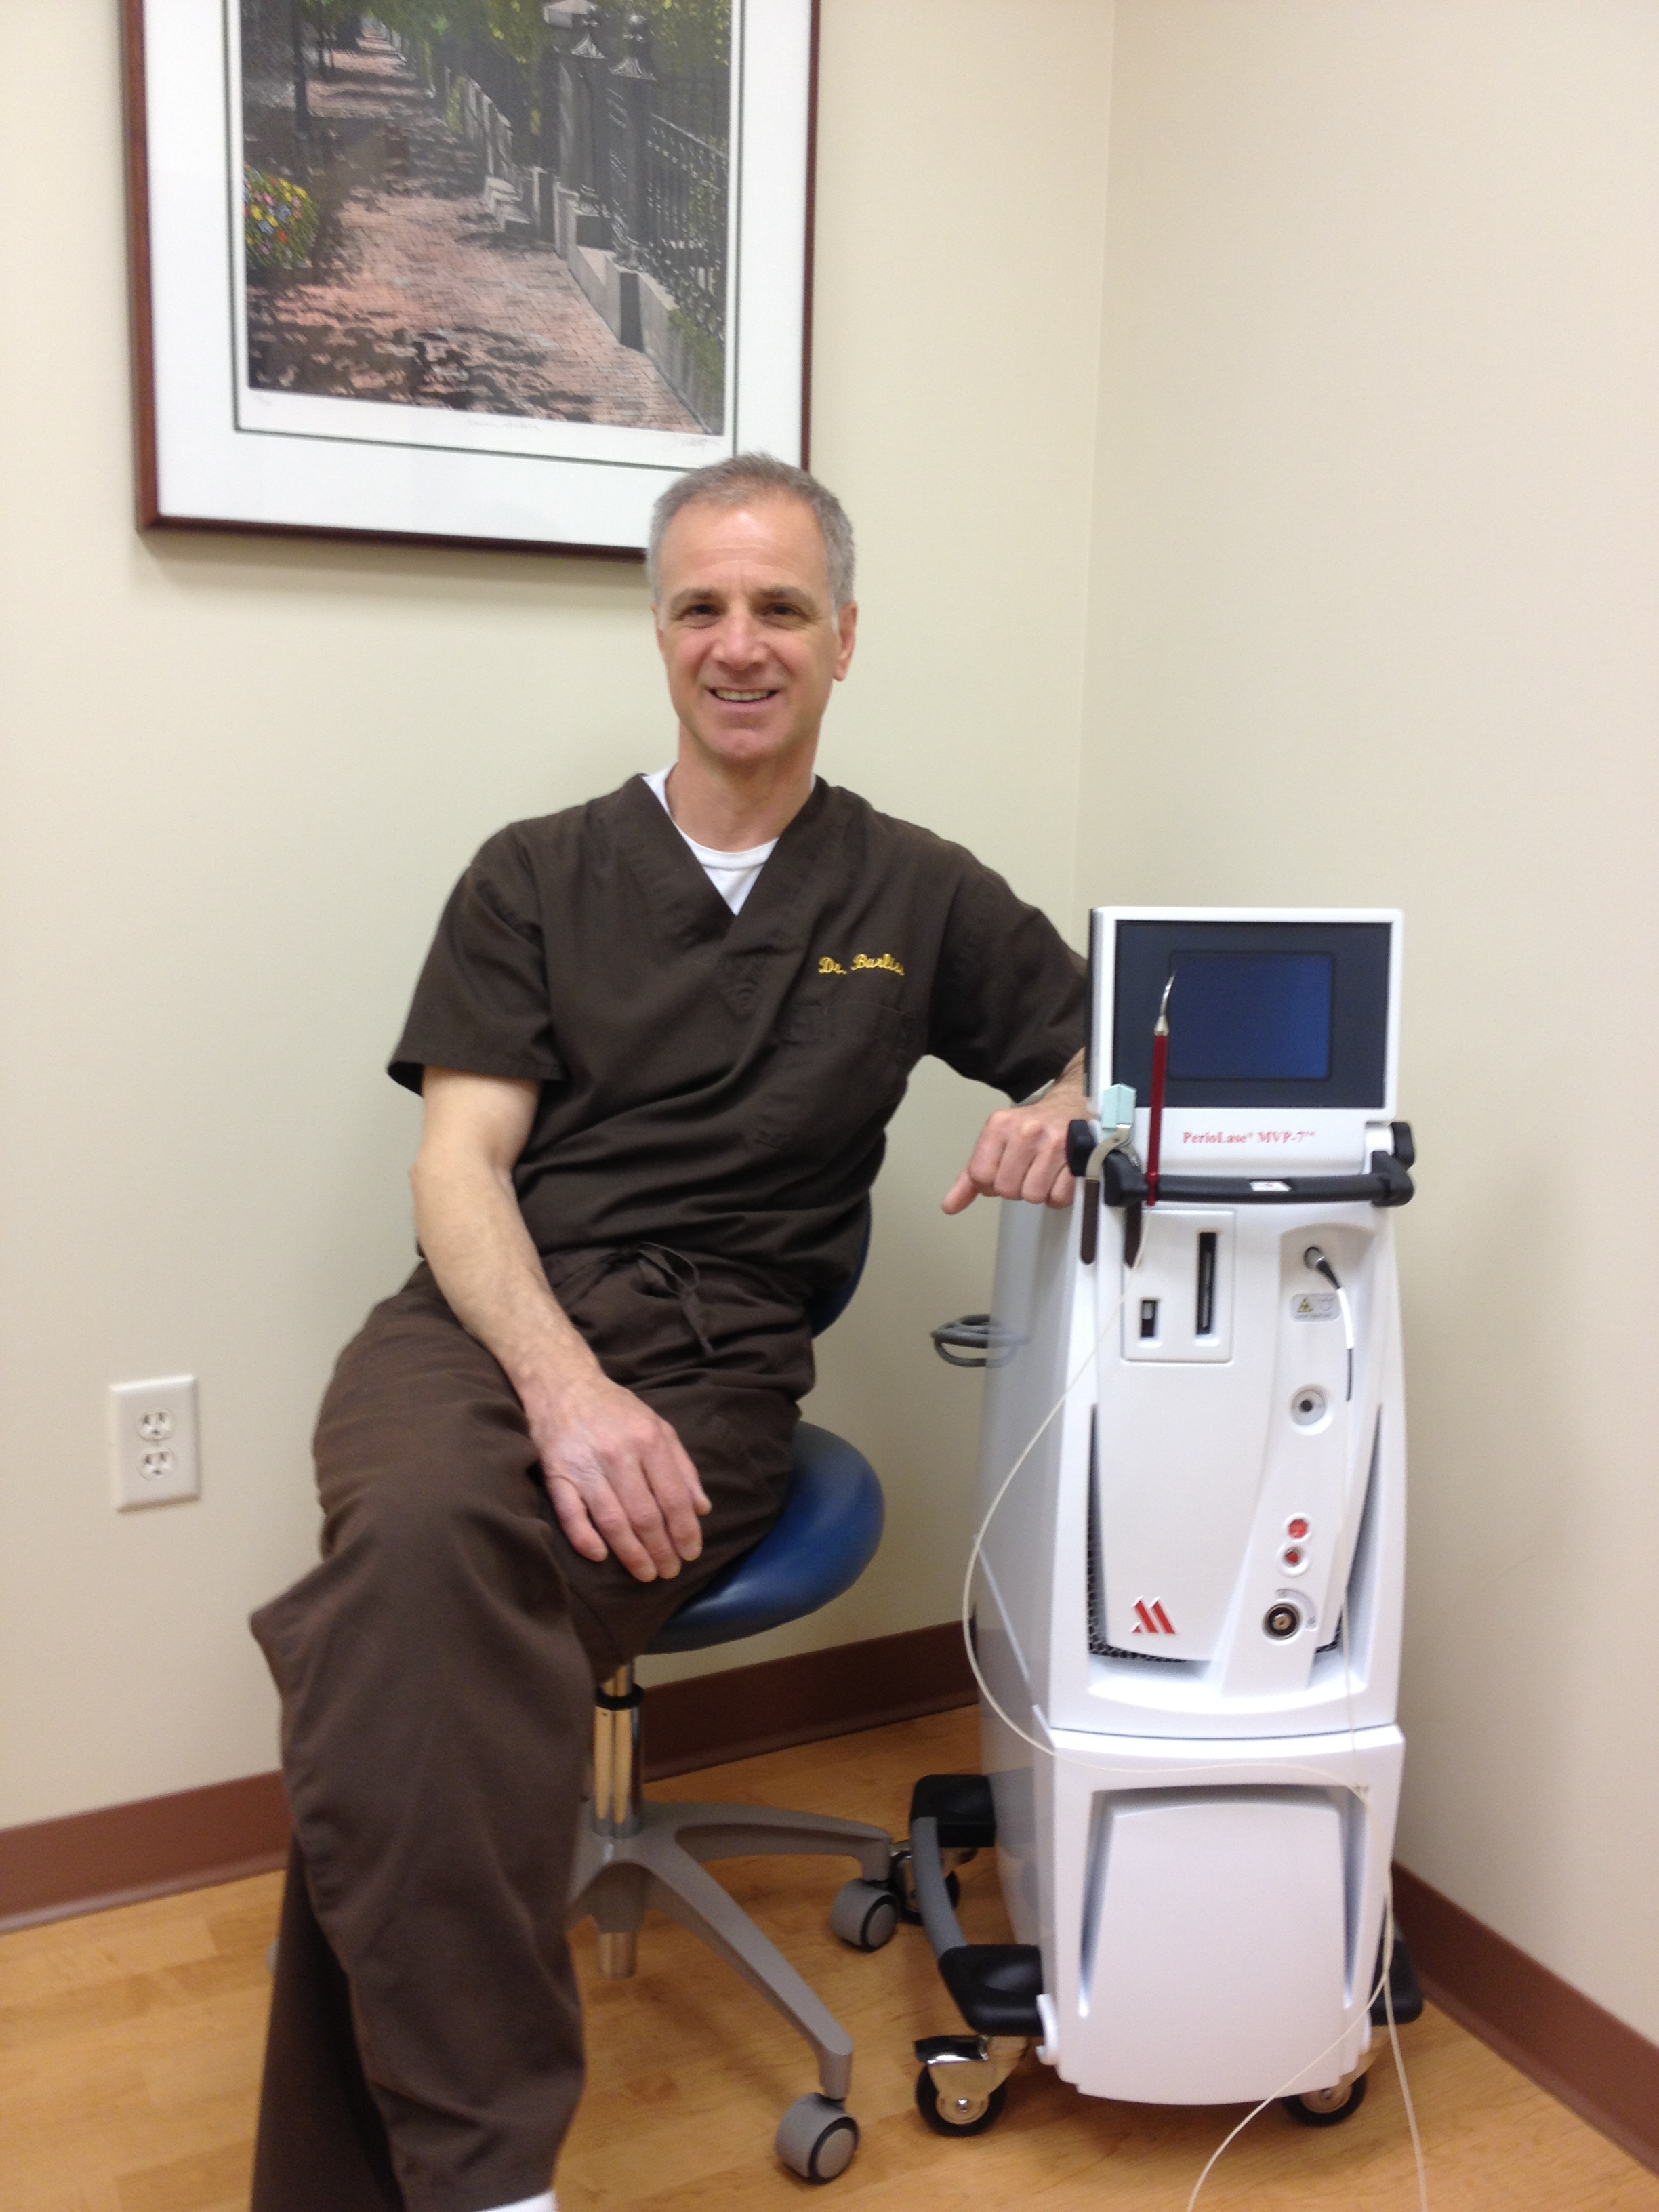 Salem Nh Periodontist Dr Charles Burliss Is Bringing